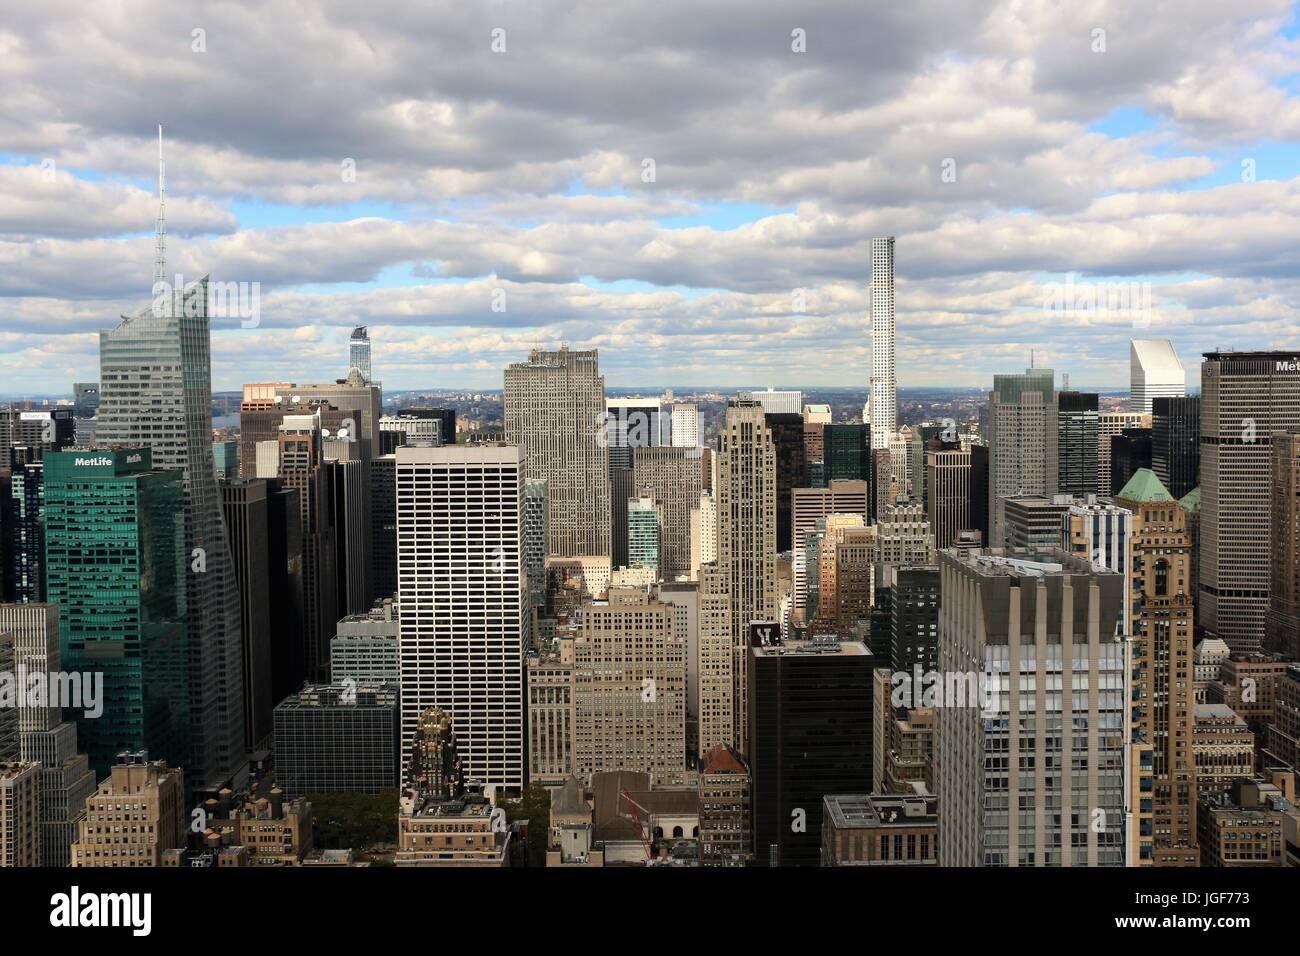 Manhattan through the Empire State Building - Stock Image